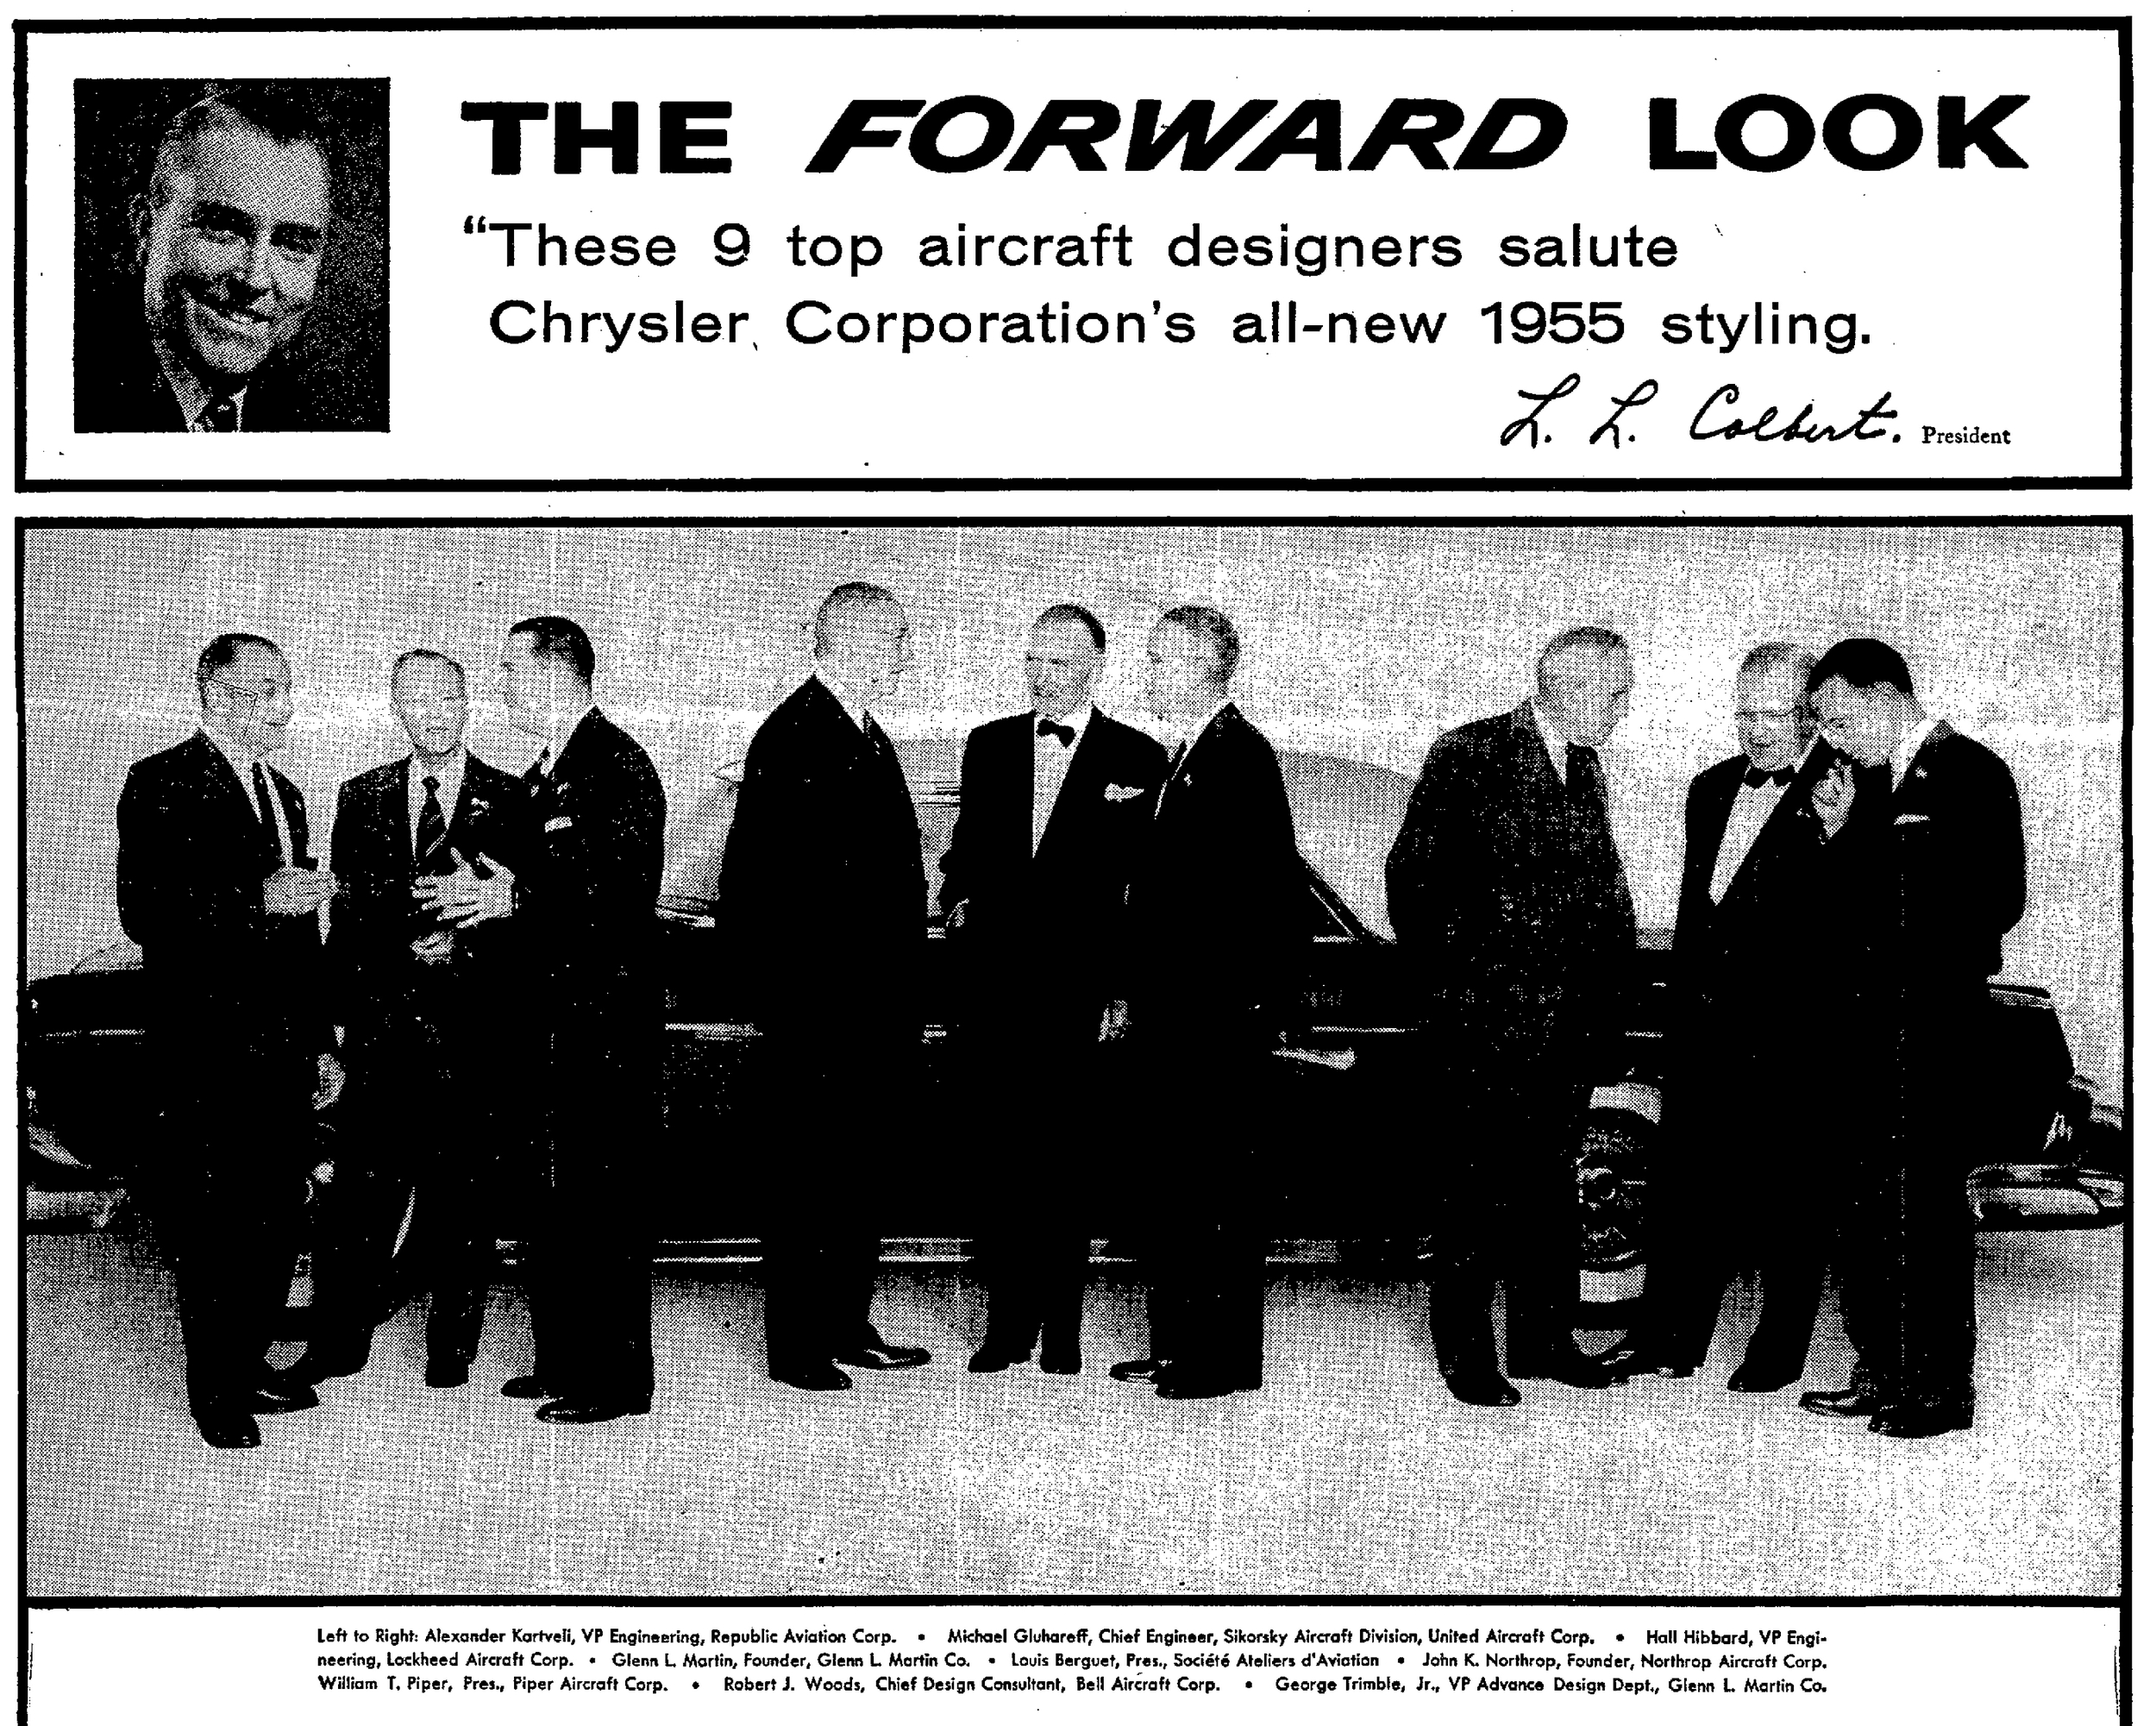 Chrysler Corporation borrowing design credibility from Kartveli and others